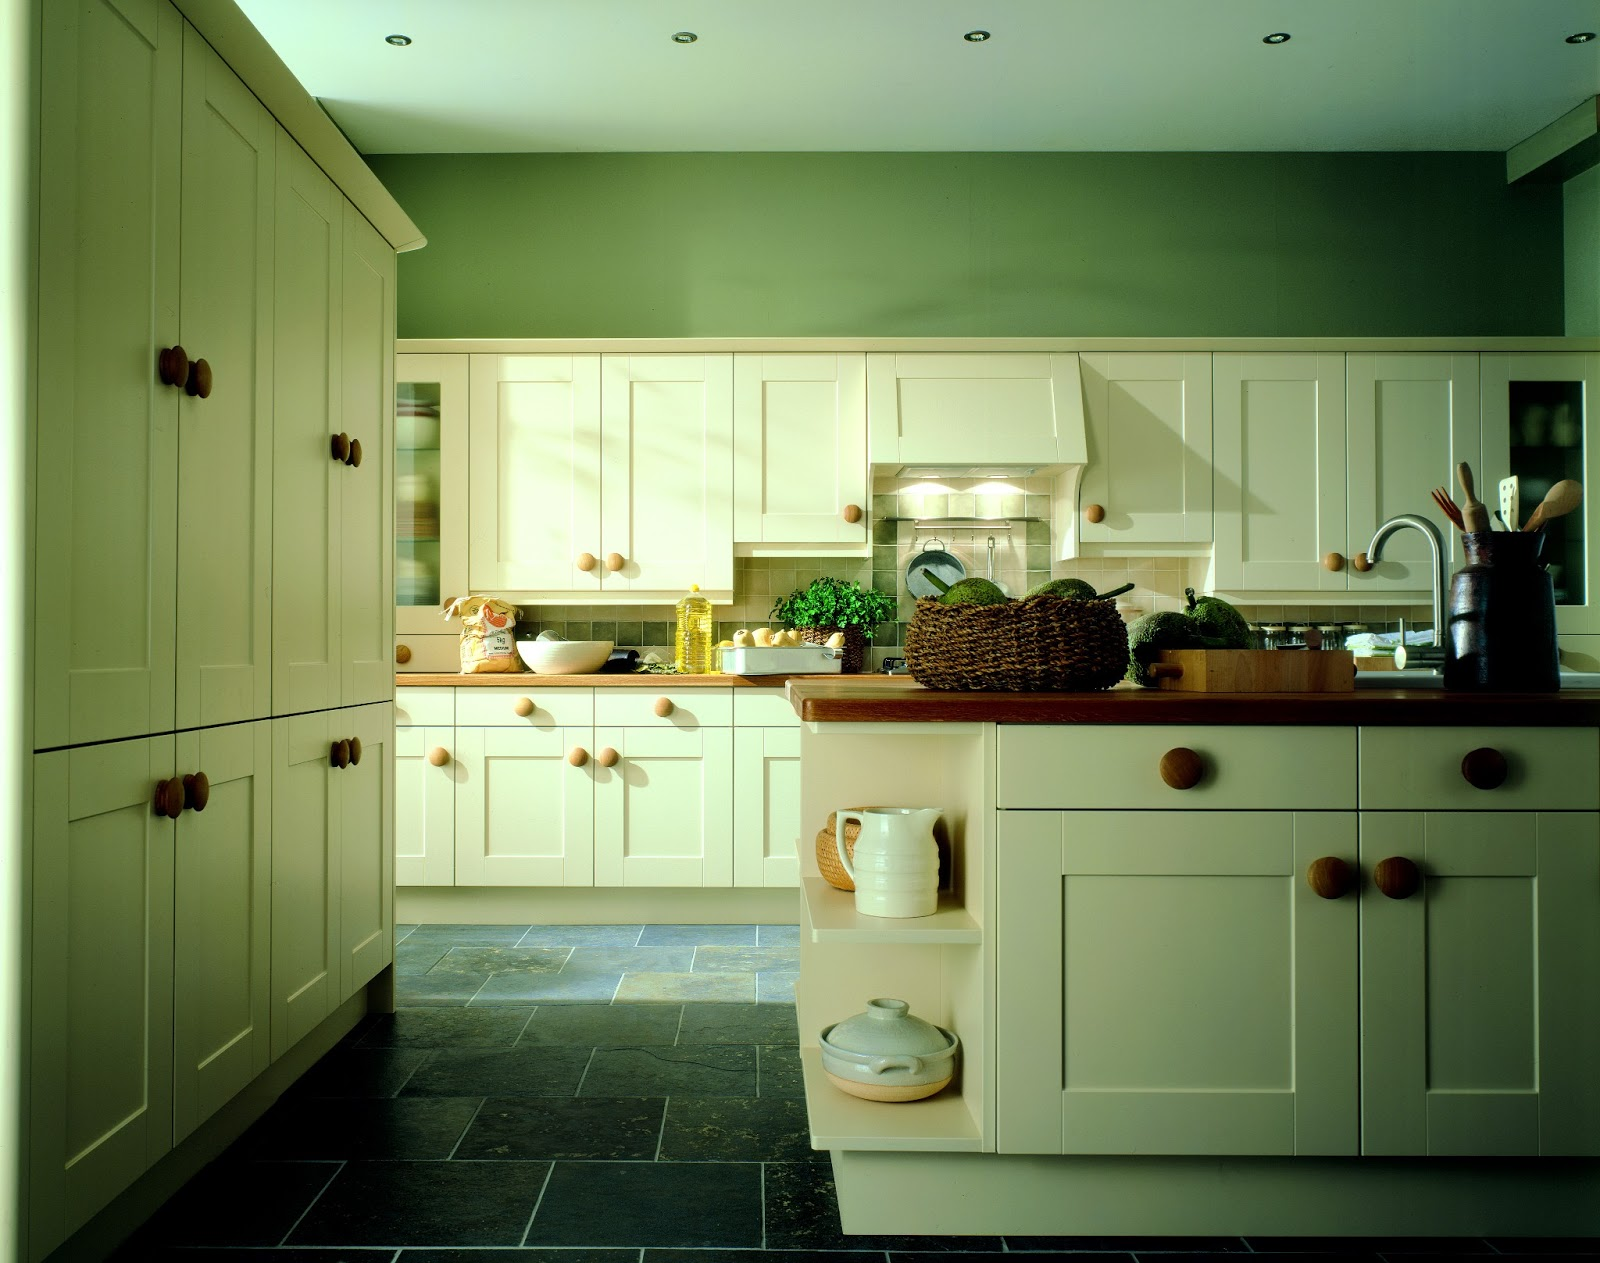 Kitchen fitters glasgow edinburgh and throughout scotland for Mid range kitchen cabinets